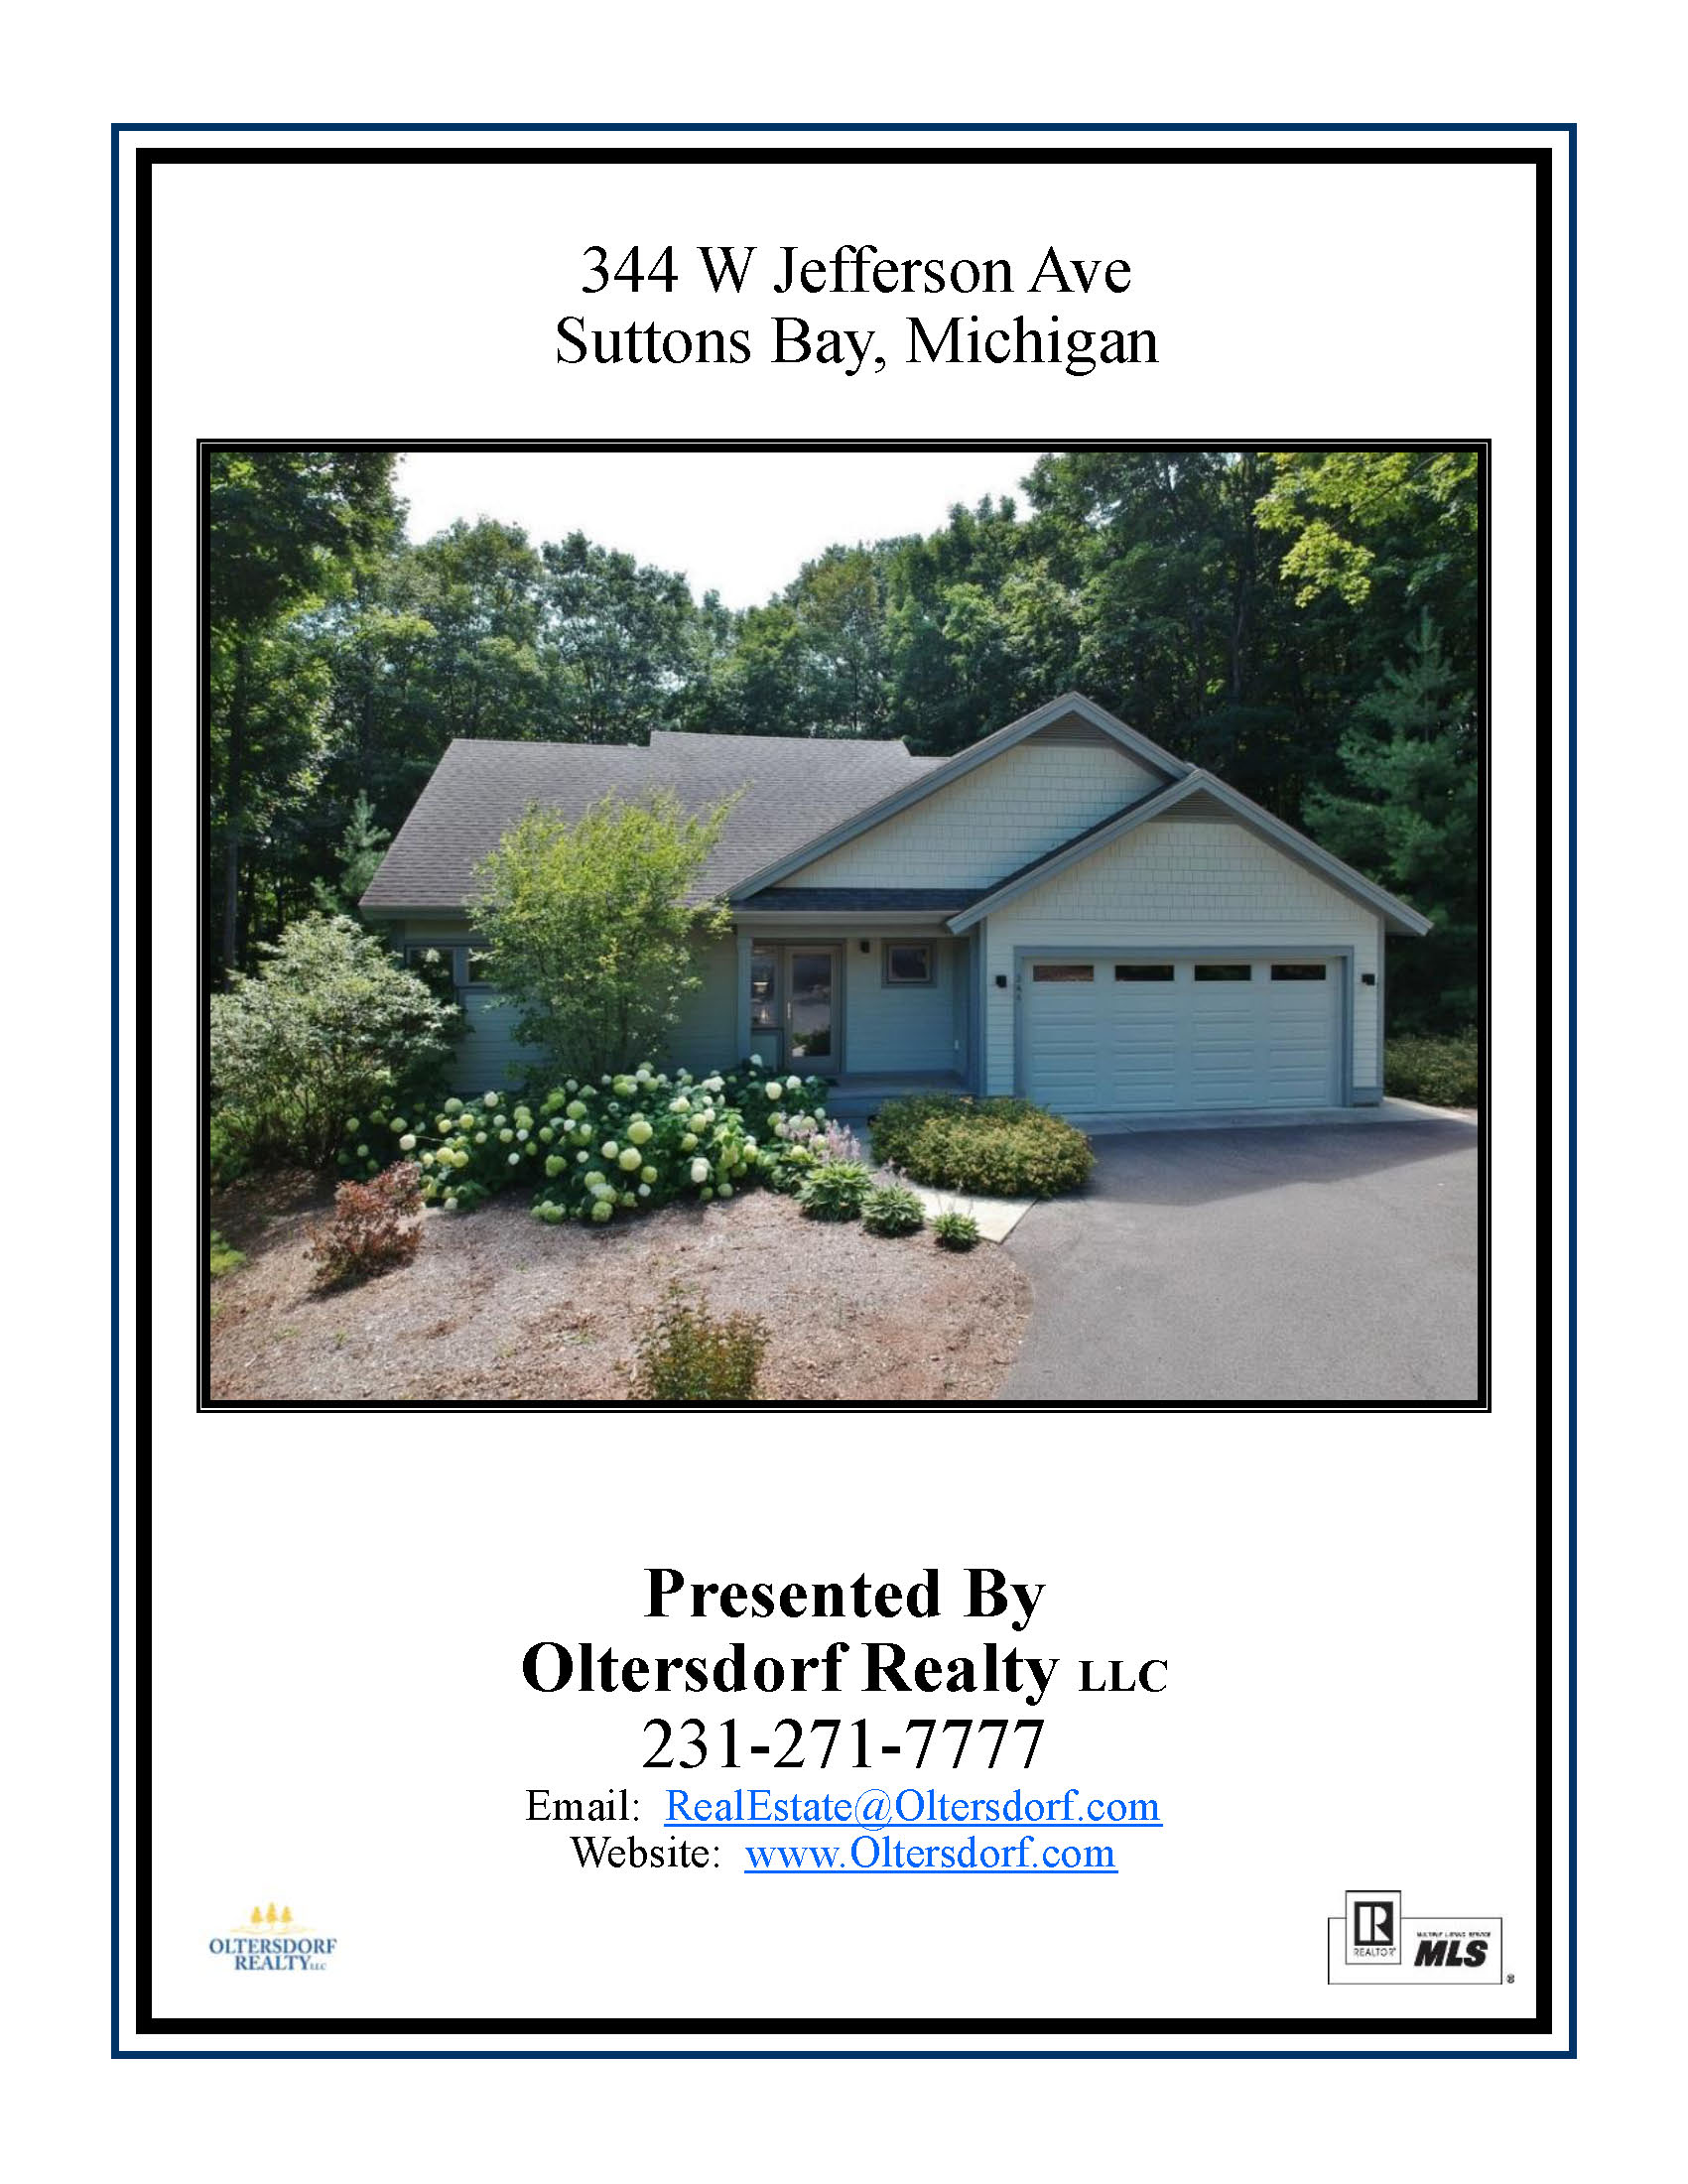 344 W Jefferson Ave Marketing Packet - For Sale by Oltersdorf Realty LLC (1).jpg